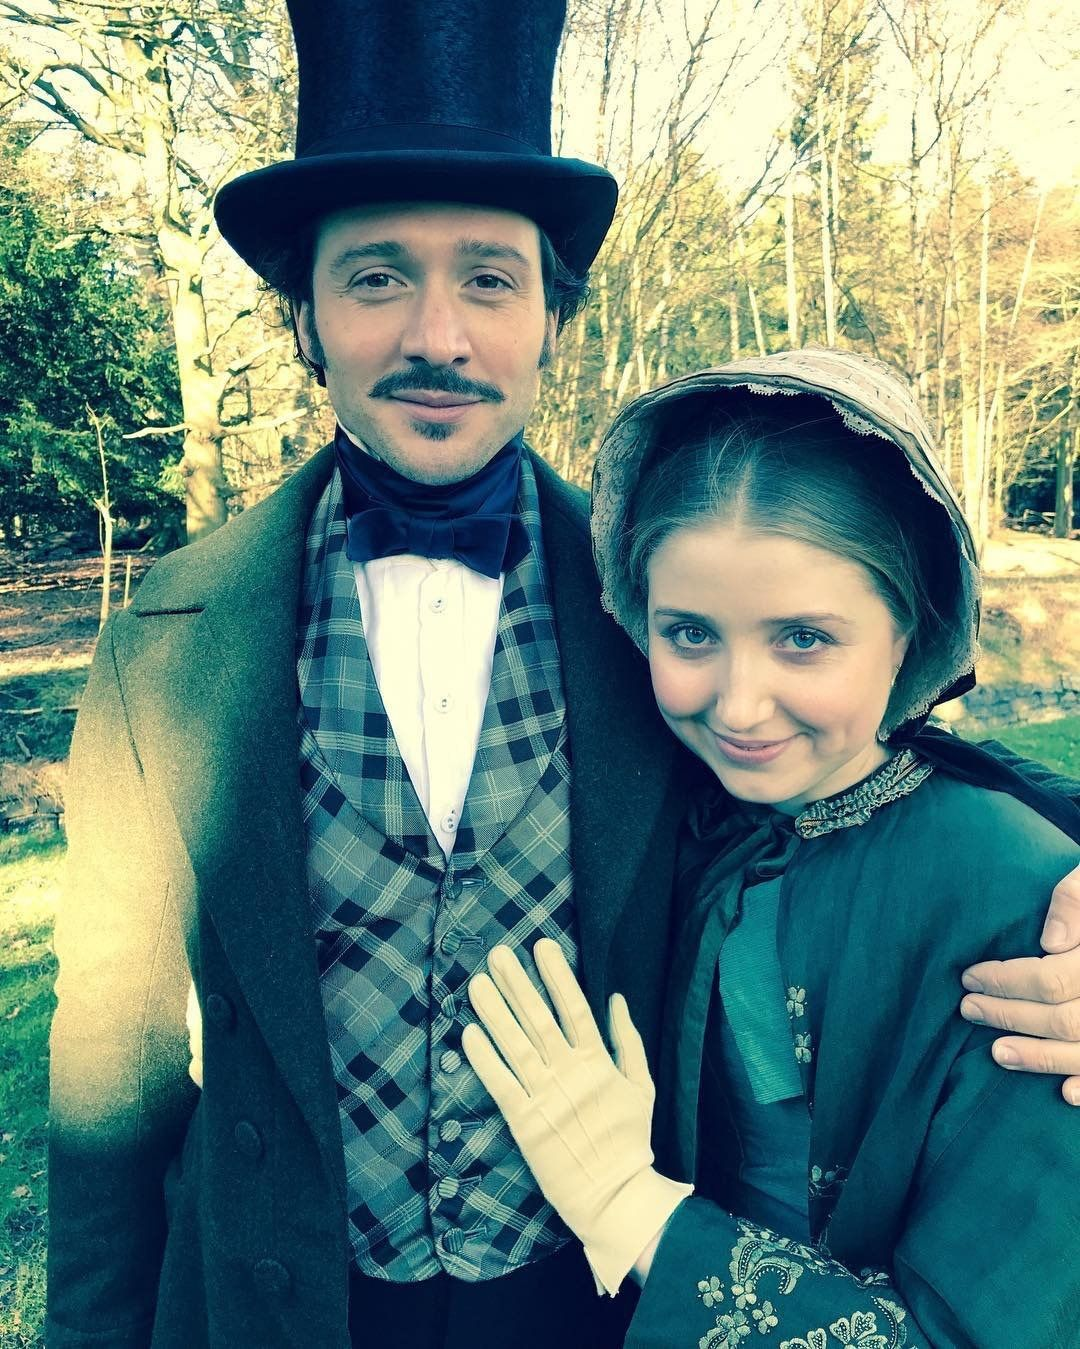 The Honorable Wilhelmina Coke and Prince Ernst, played by Bebe Cave and David Oakes. Victoria S2.